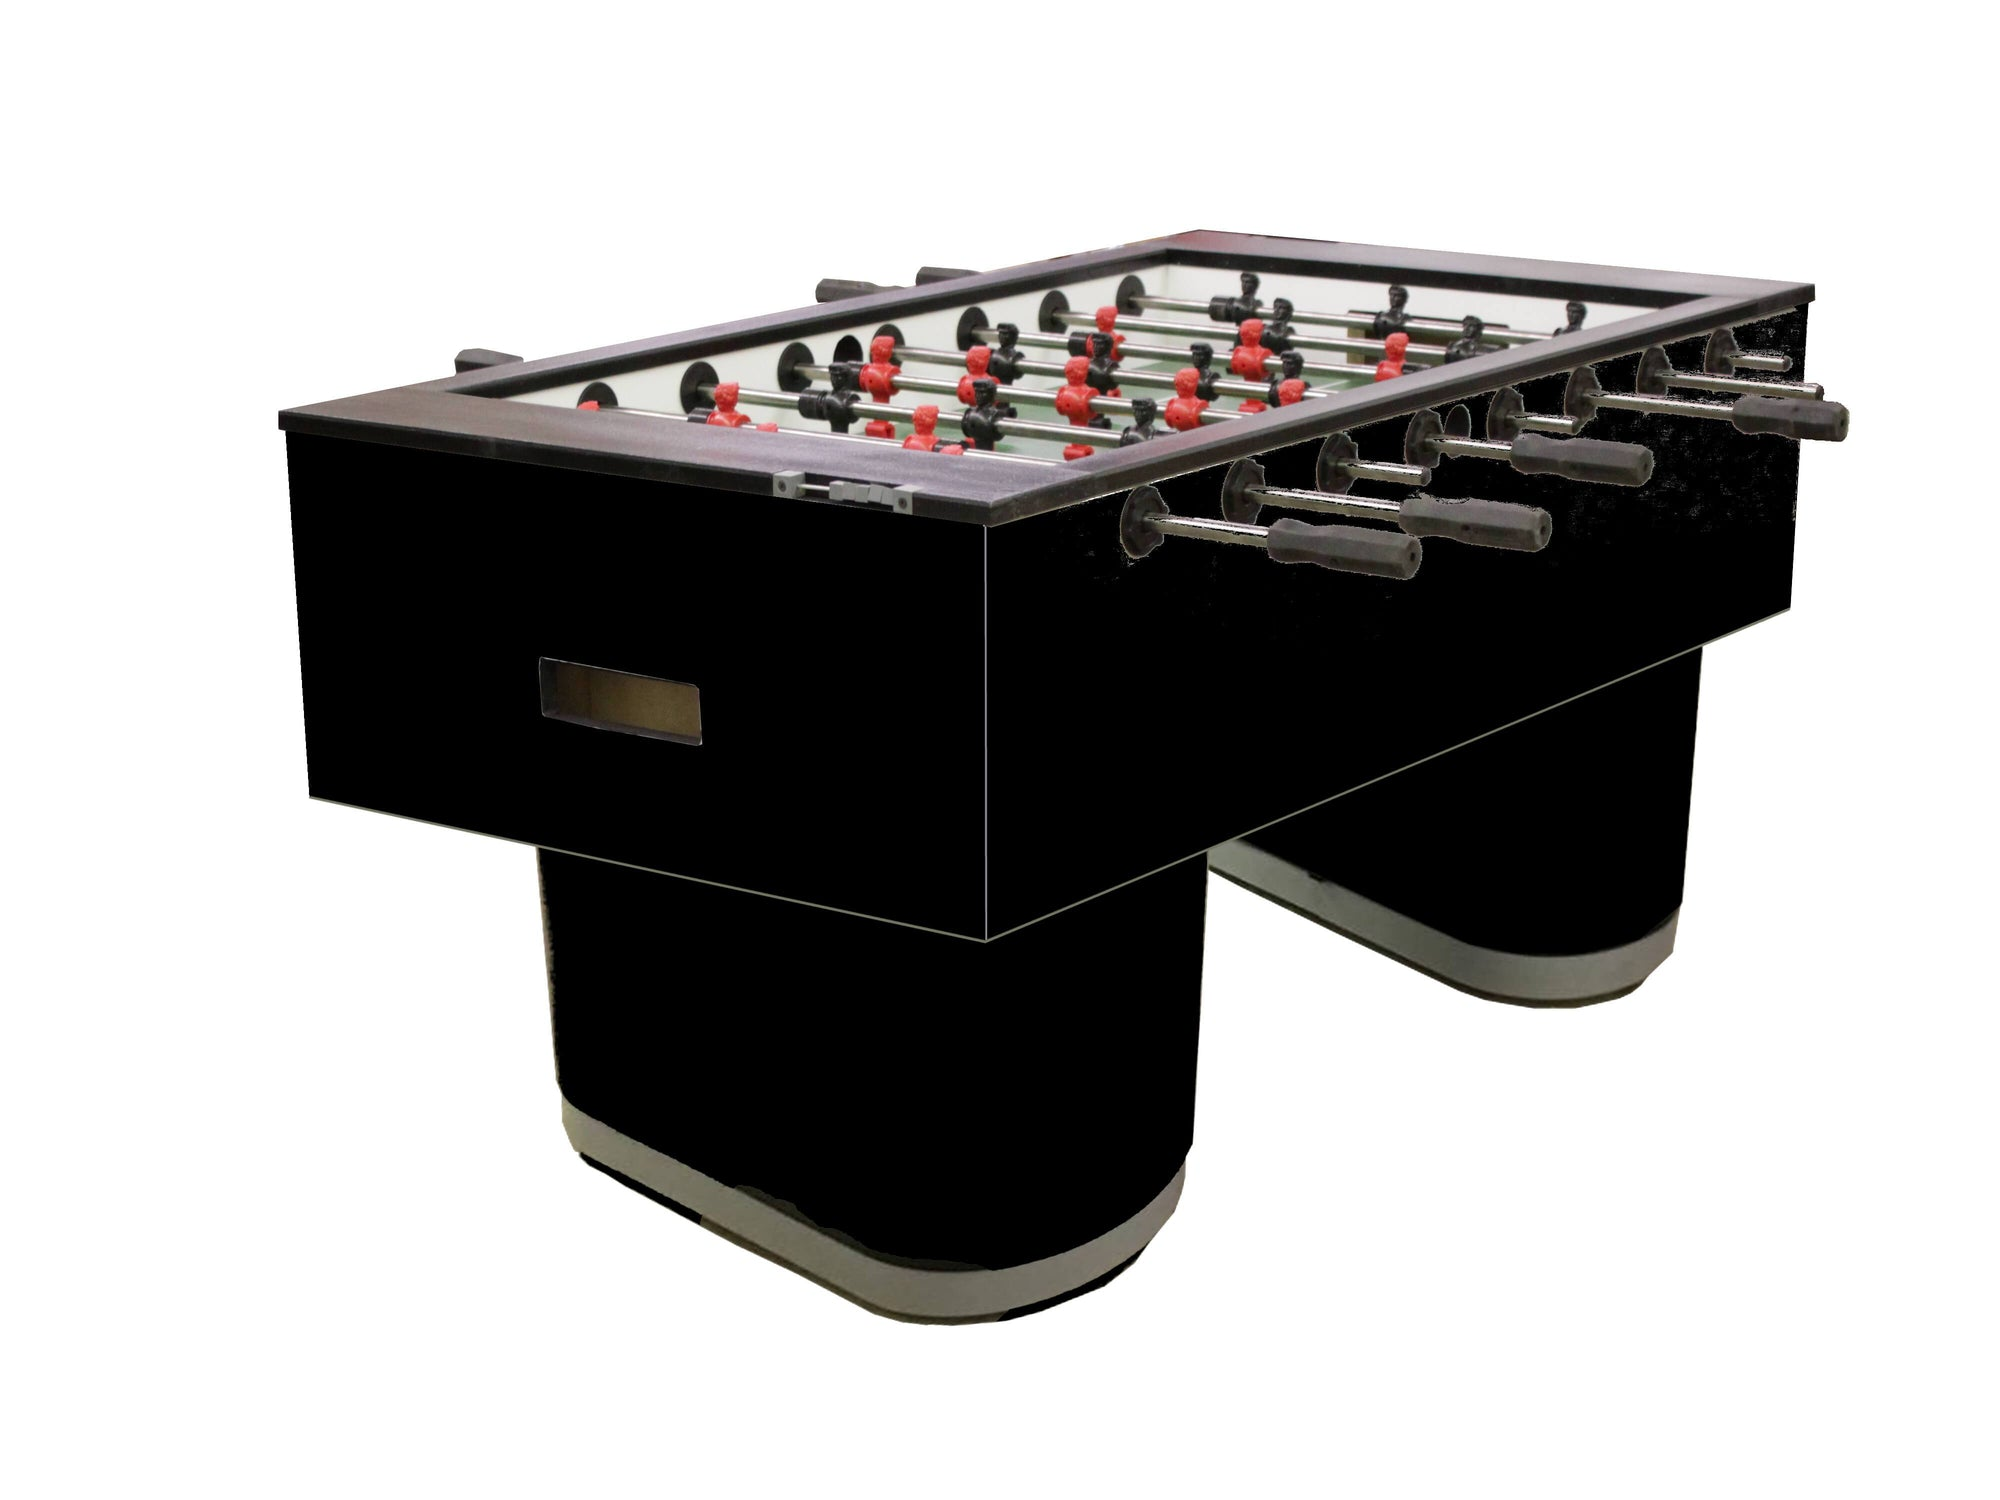 "Performance Games Sure Shot RS Tubular Legs Foosball Table 56"" - Gaming Blaze"